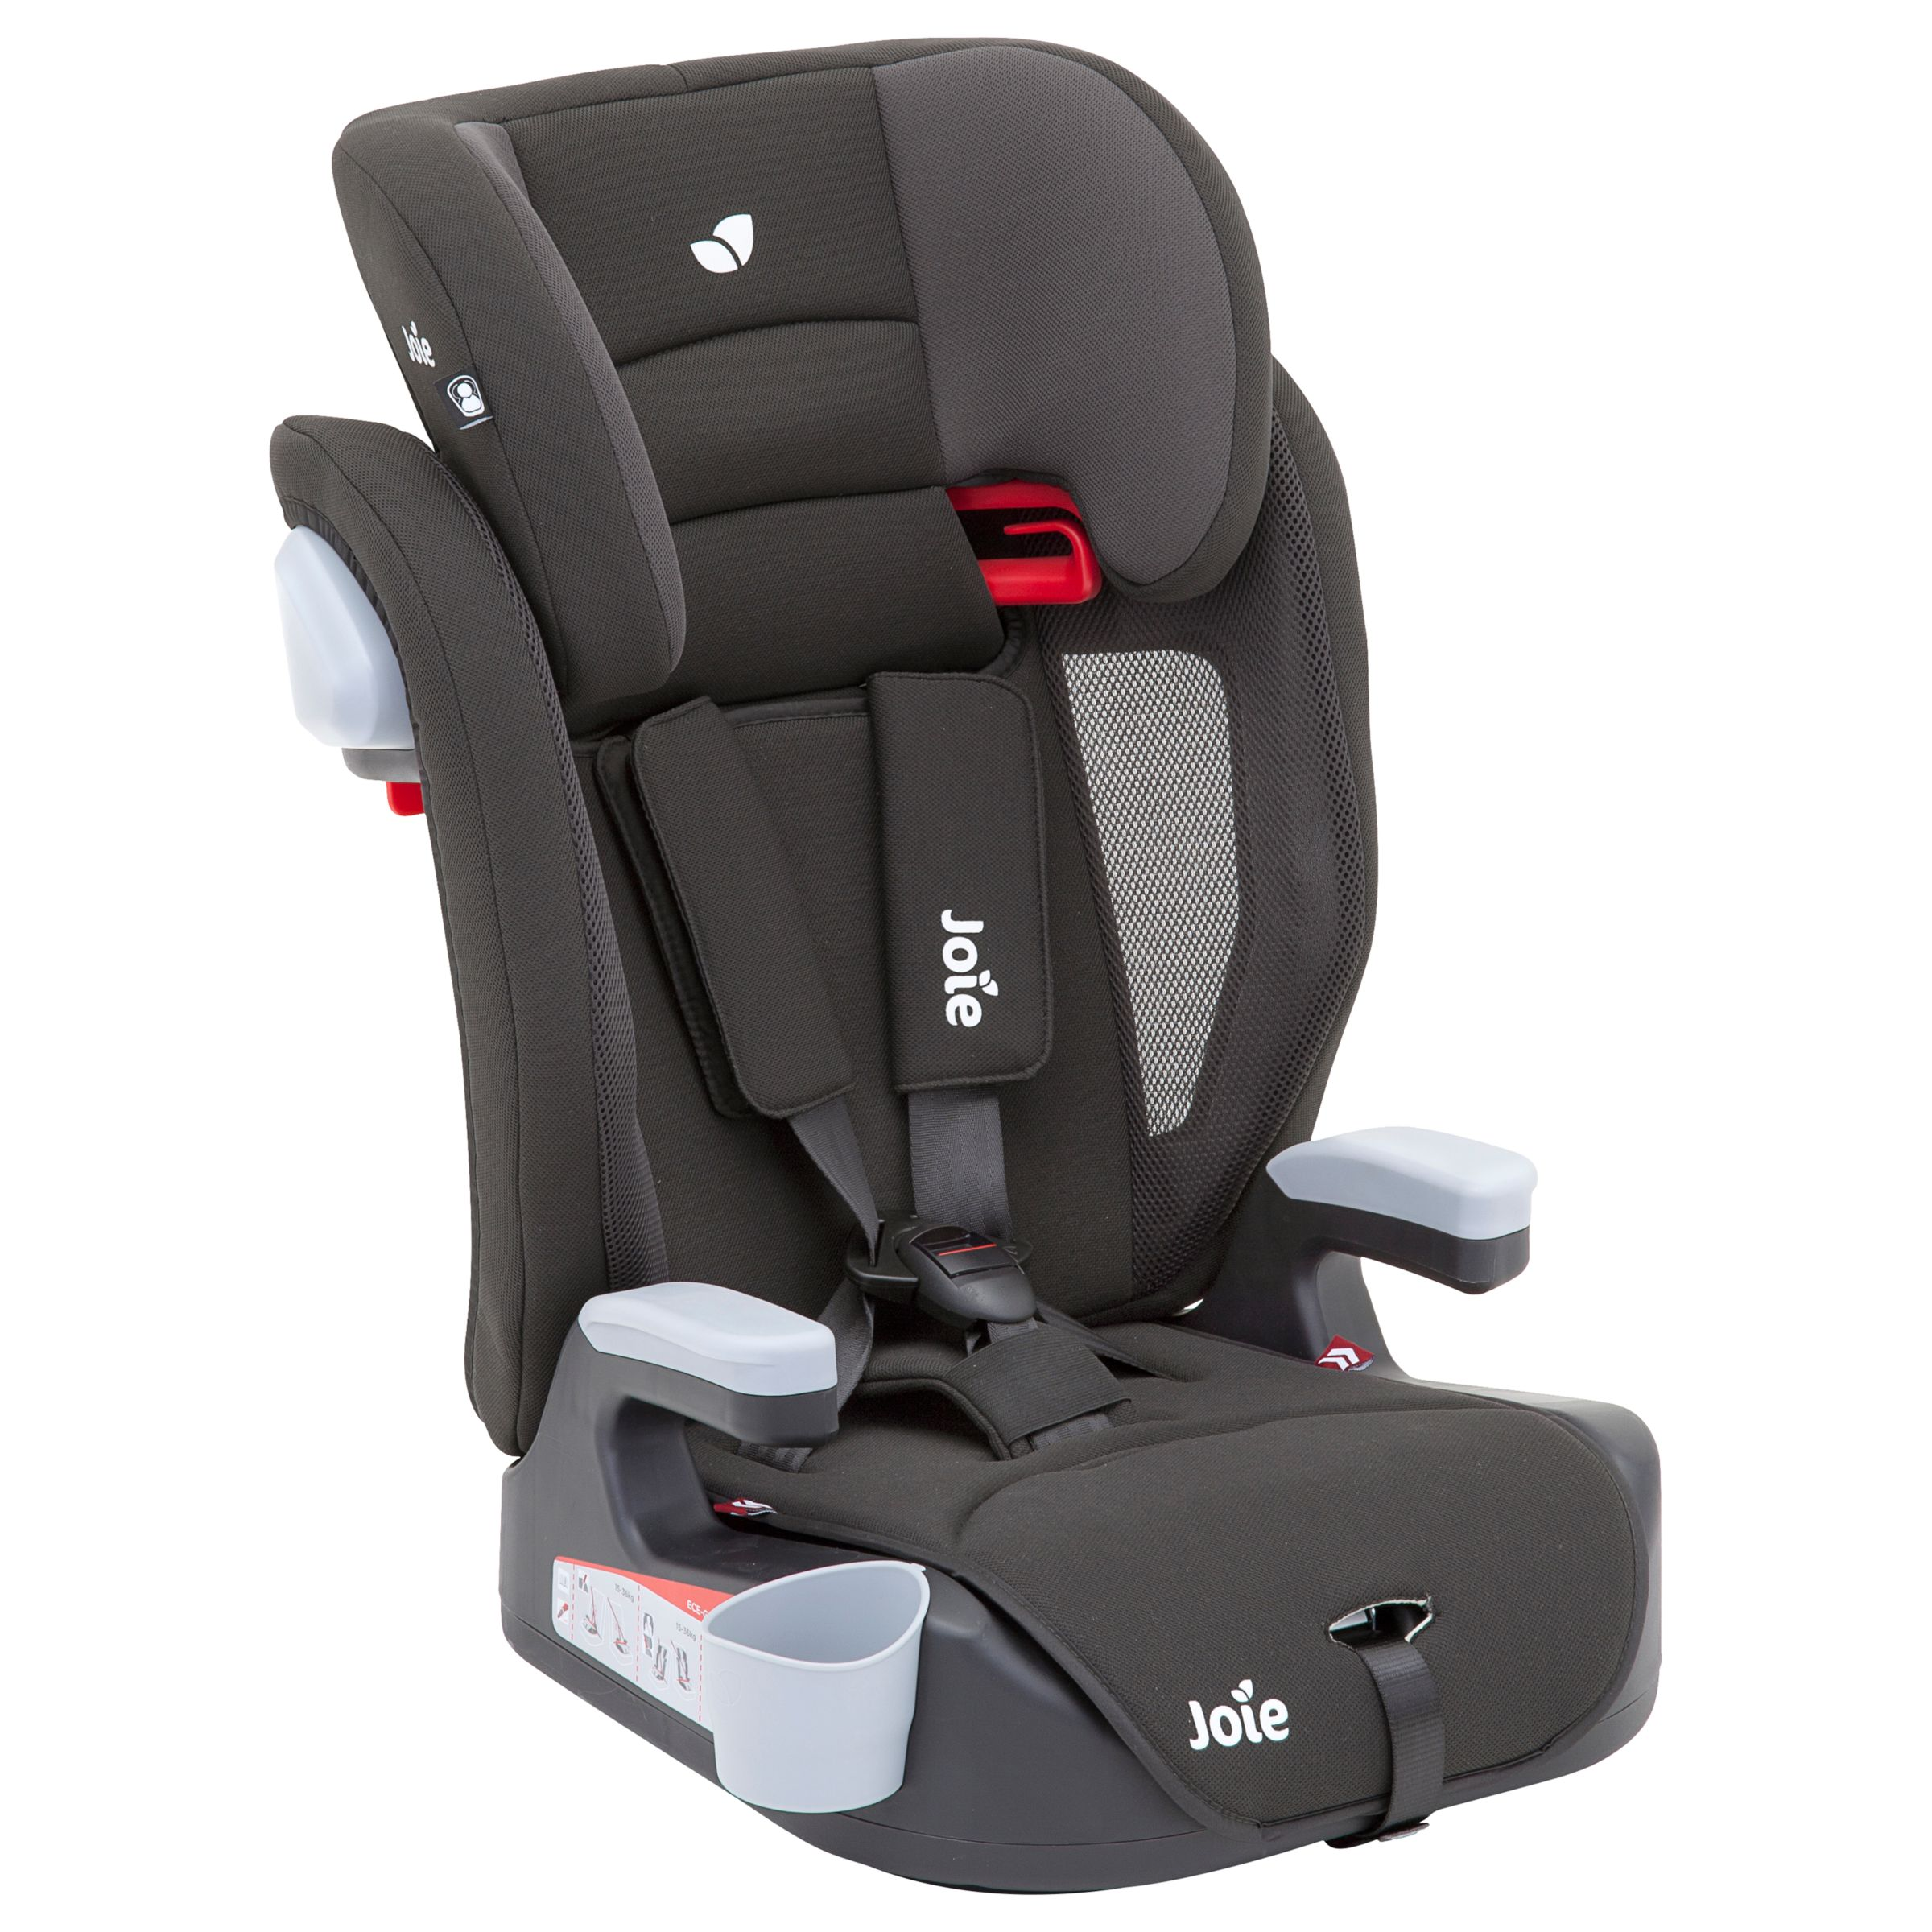 Joie Baby Joie Baby Elevate Group 1/2/3 Car Seat, Two Tone Black